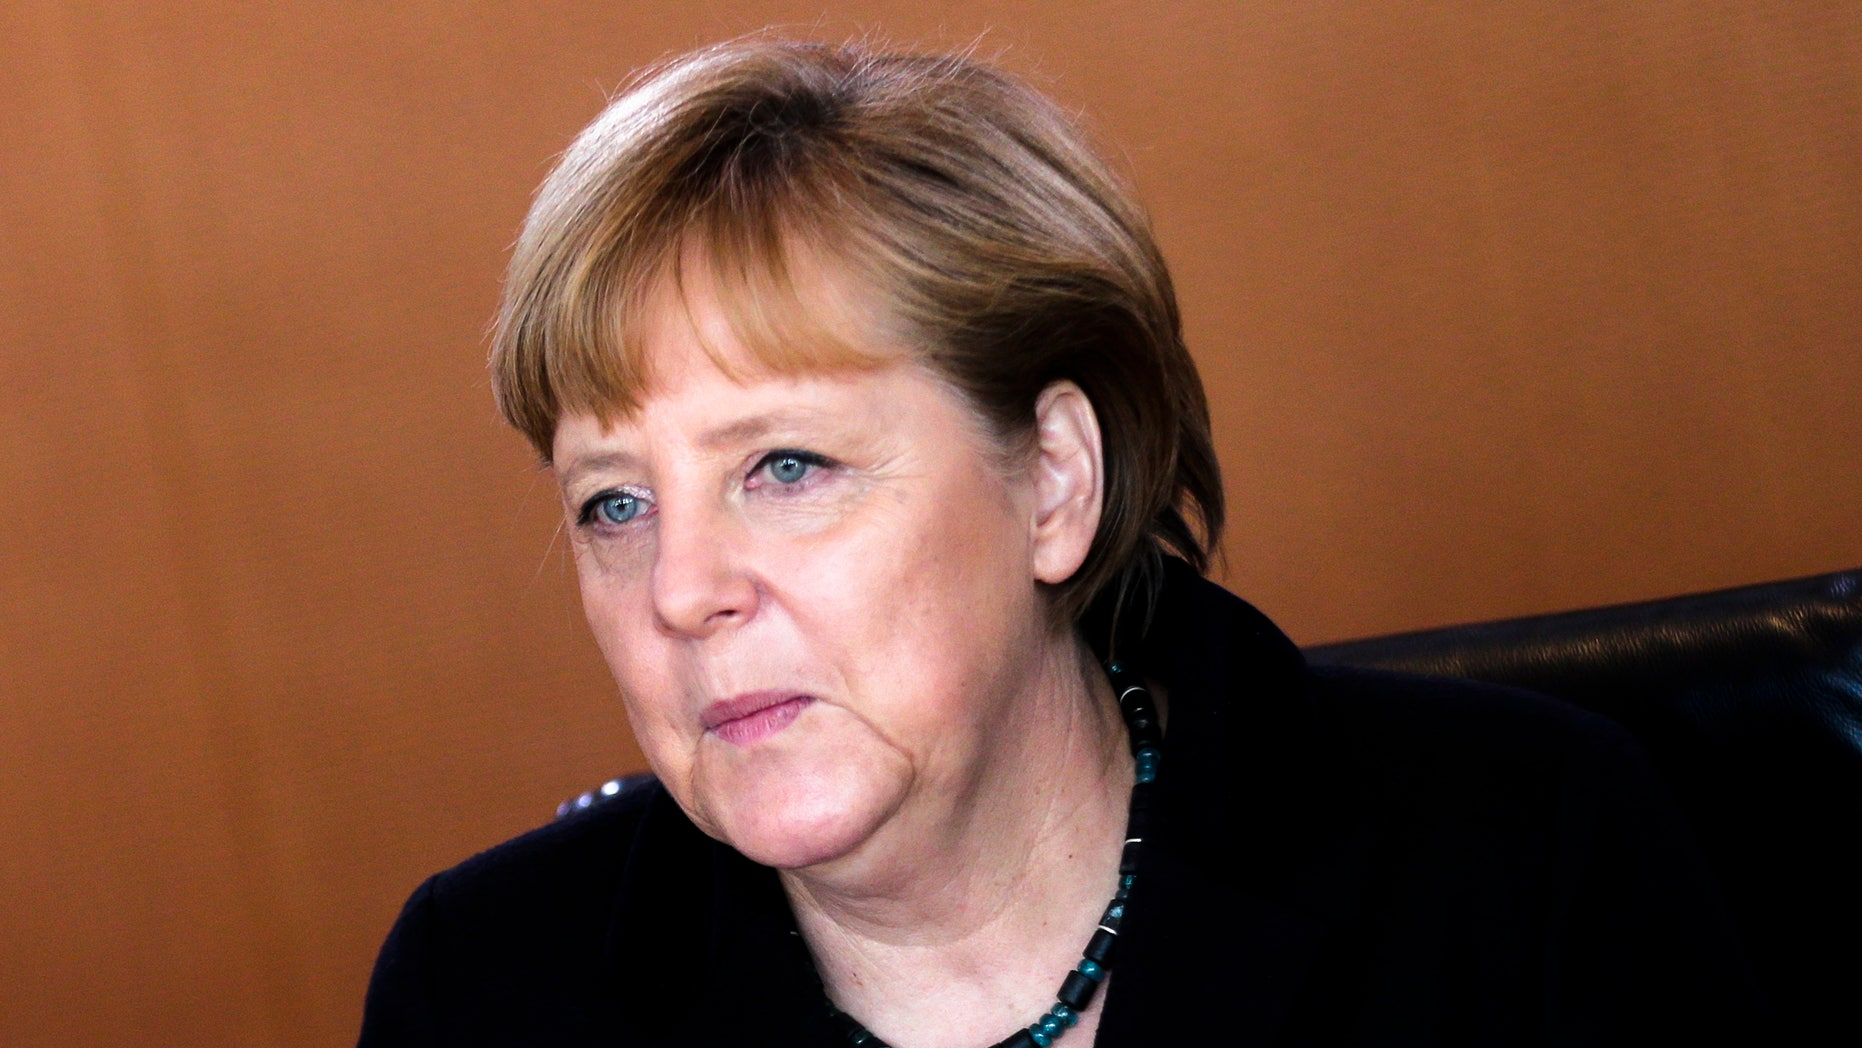 German Chancellor Angela Merkel is under fire for welcoming nearly 1 million refugees. (AP file photo)